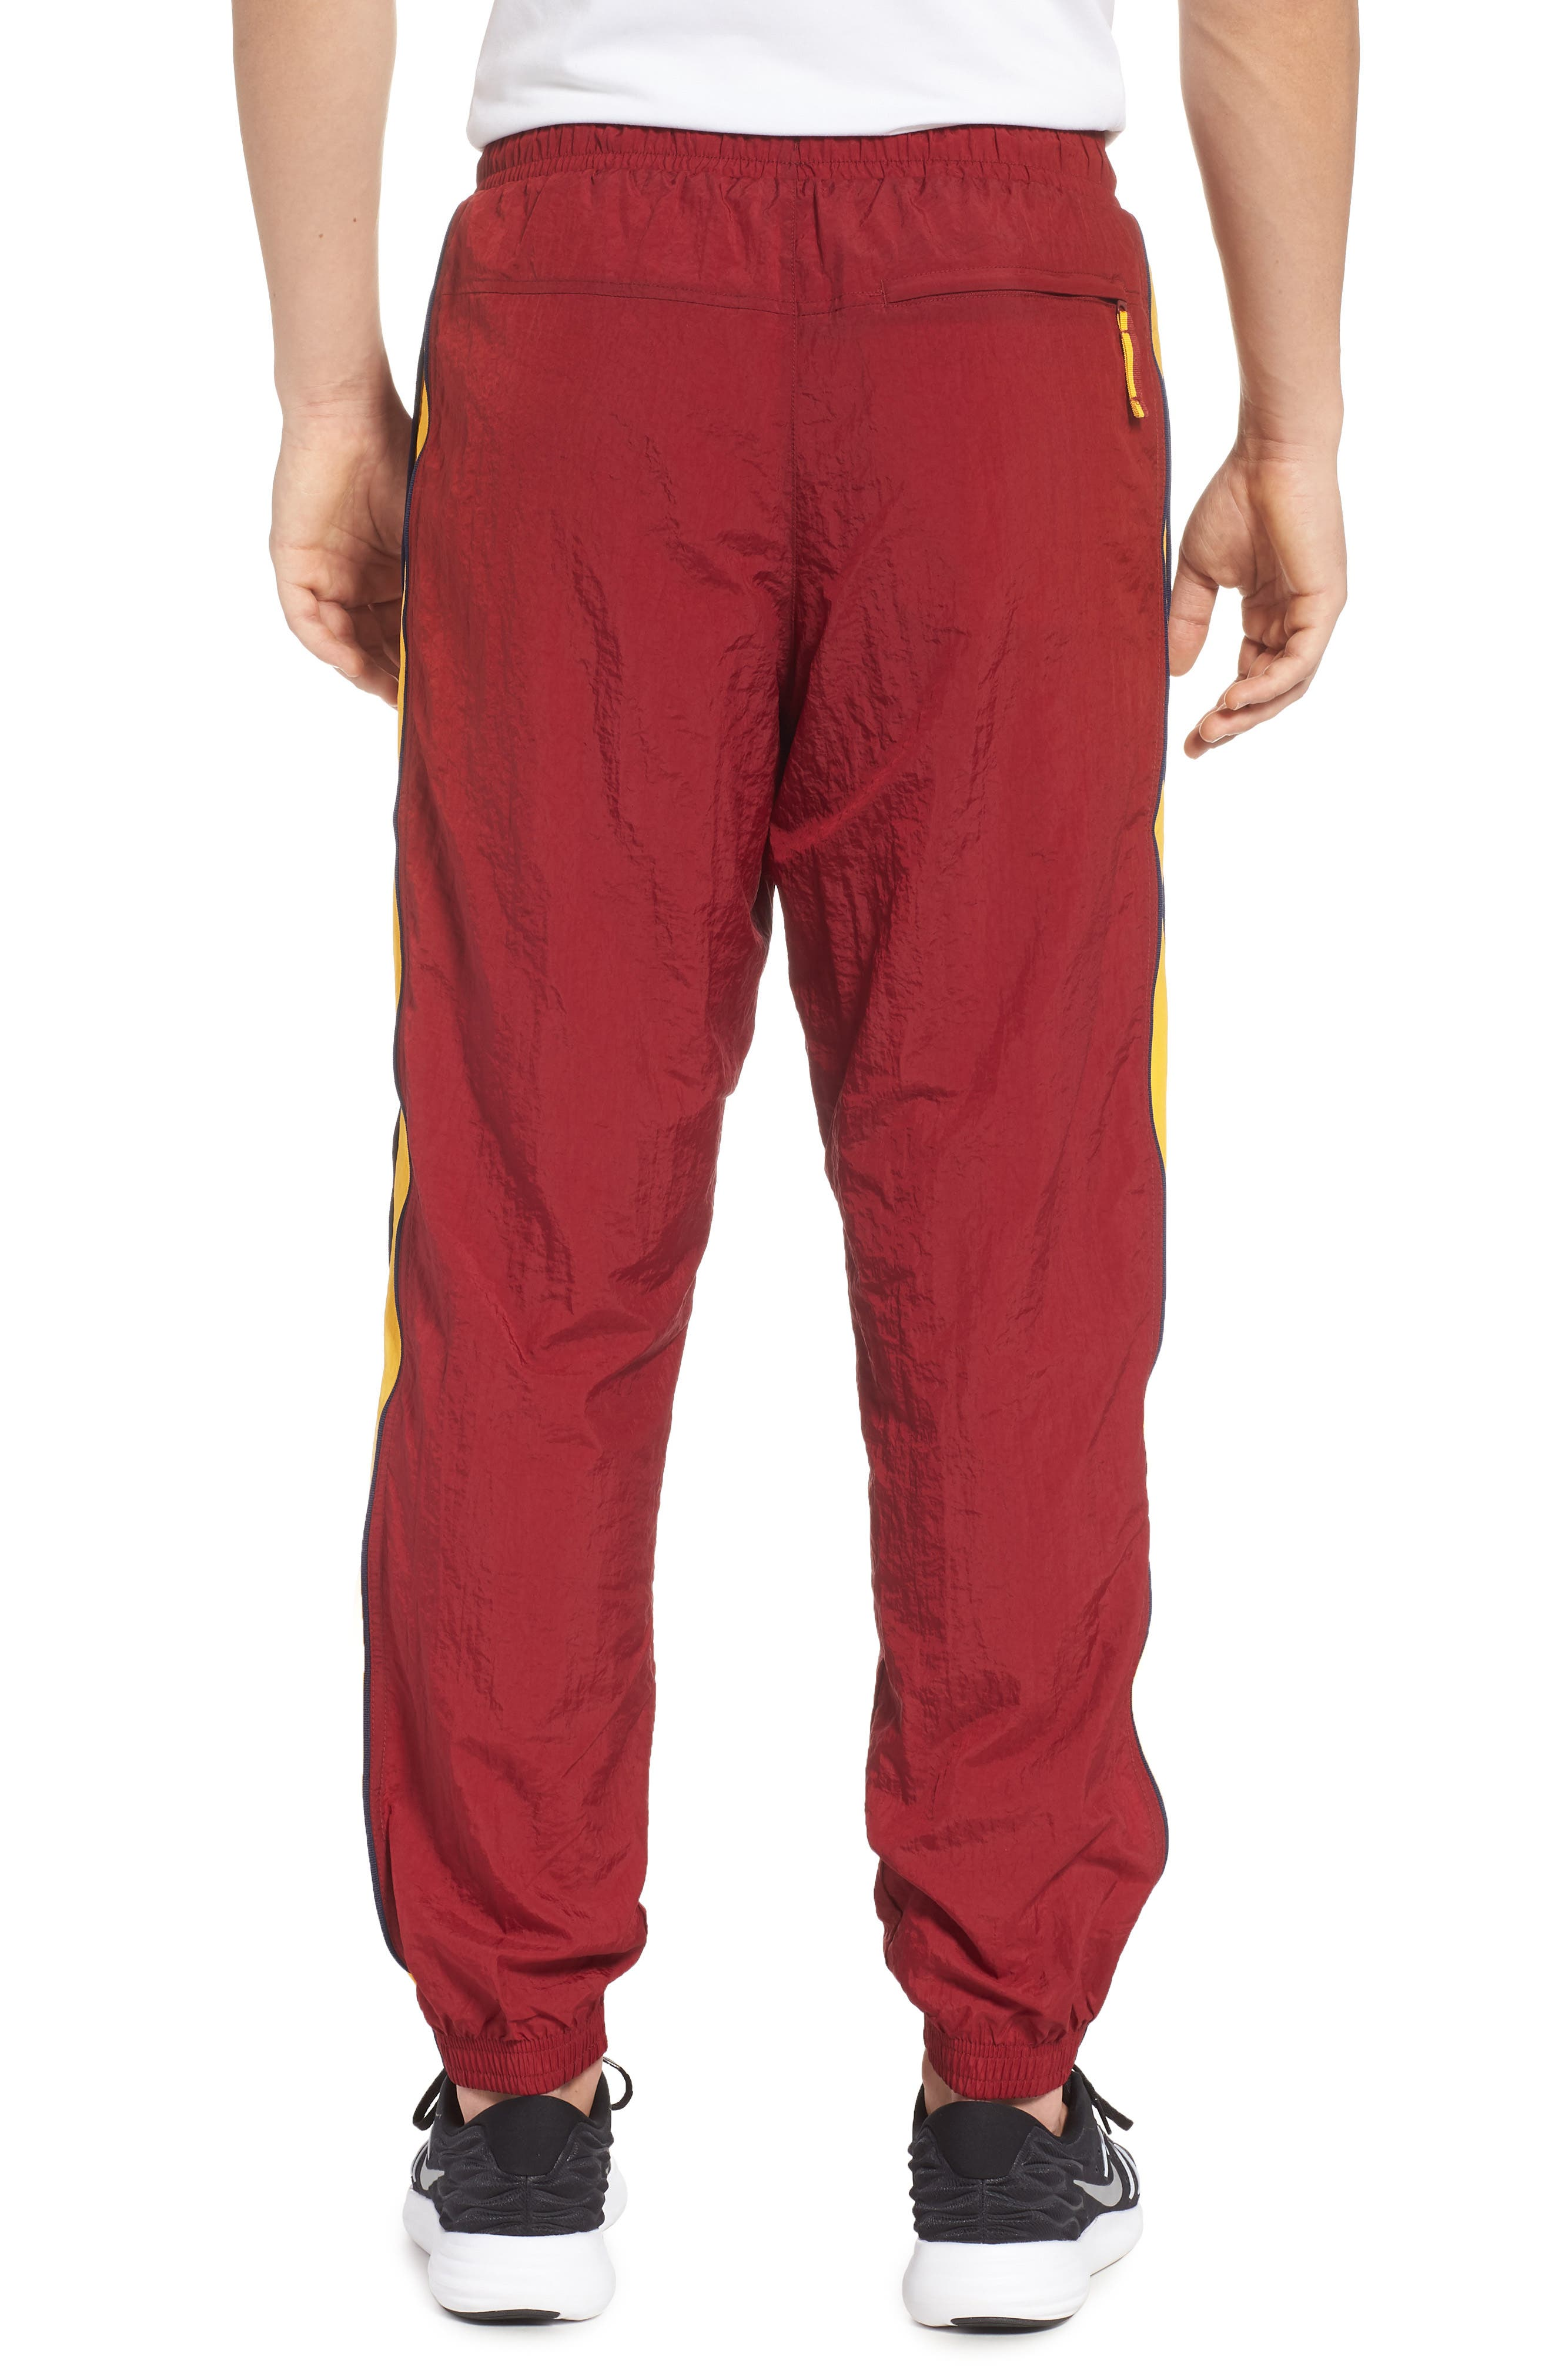 Cleveland Cavaliers Tracksuit Pants,                             Alternate thumbnail 2, color,                             TEAM RED/ UNIVERSITY GOLD